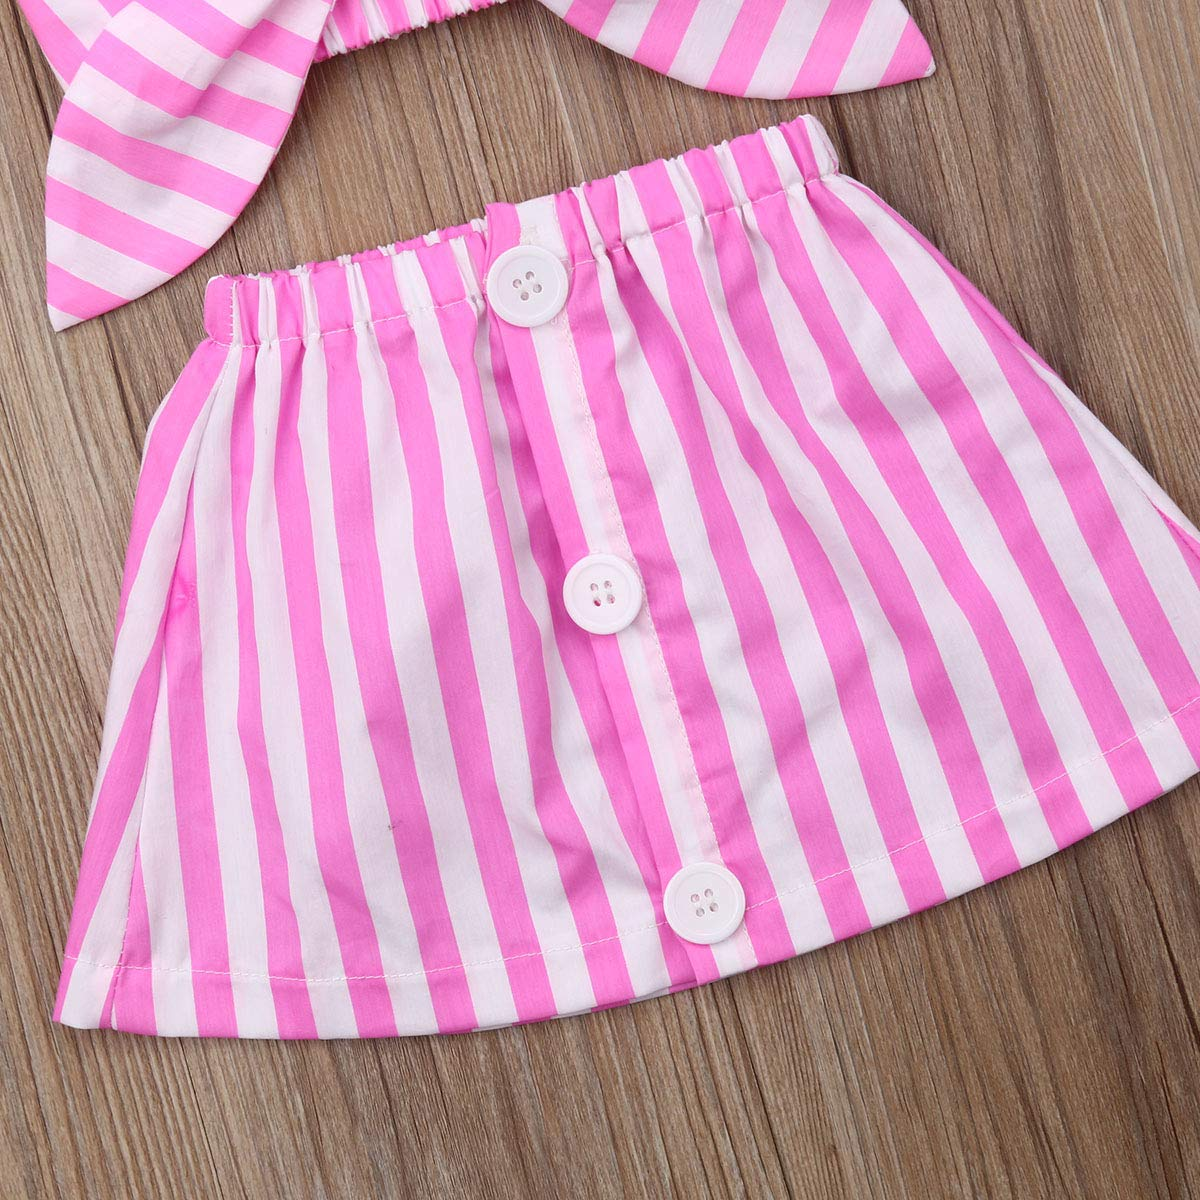 Baby Girls Sleeveless Halter Crop Top Vest T-Shirt Button Striped A-Line Skirt Headband Outfits Set for Infant Kid